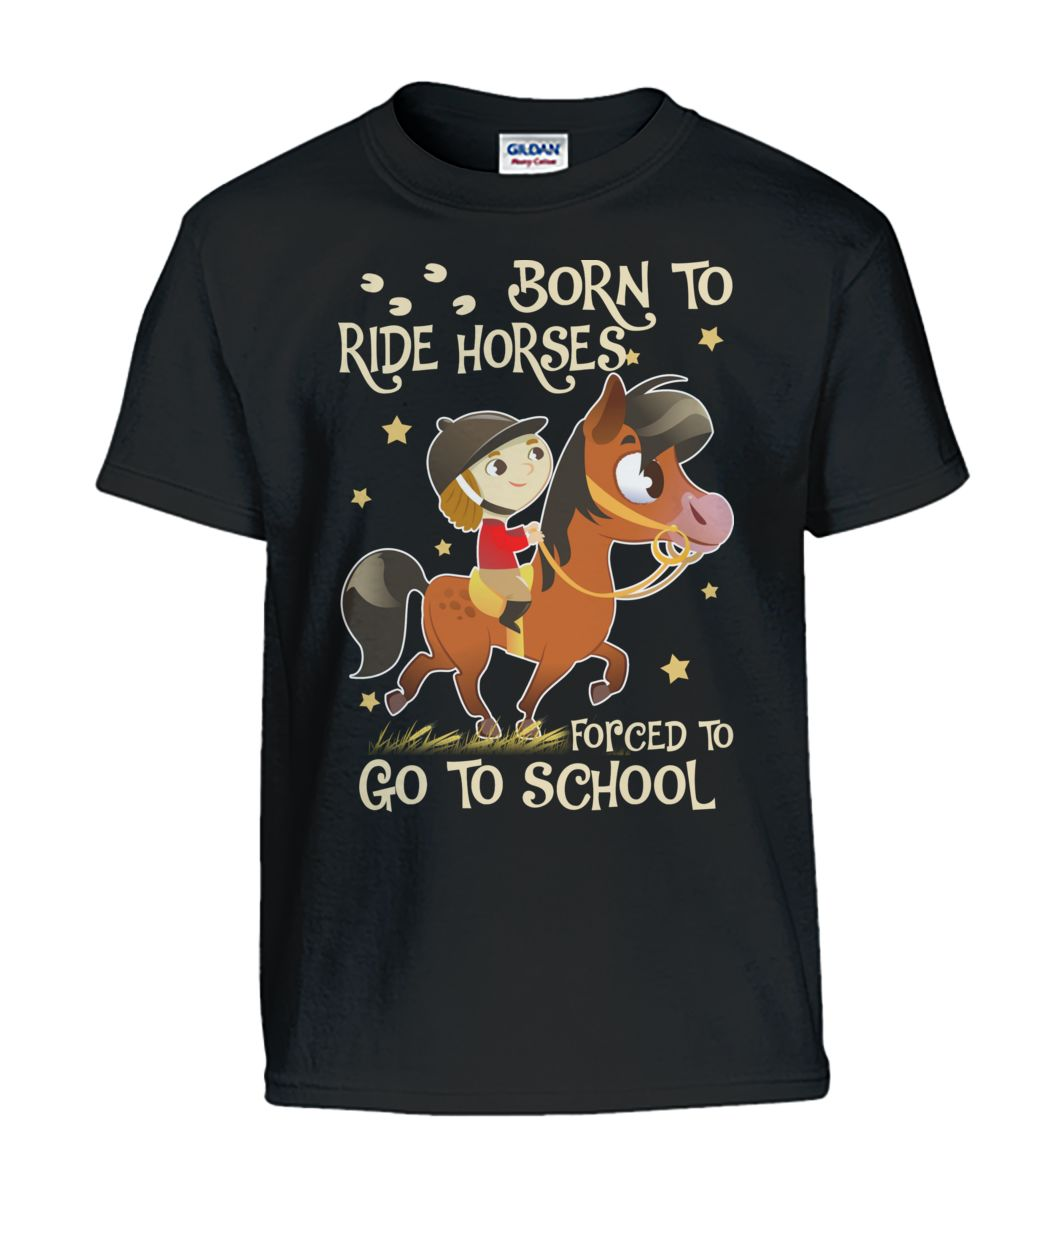 Born To Ride Horses.